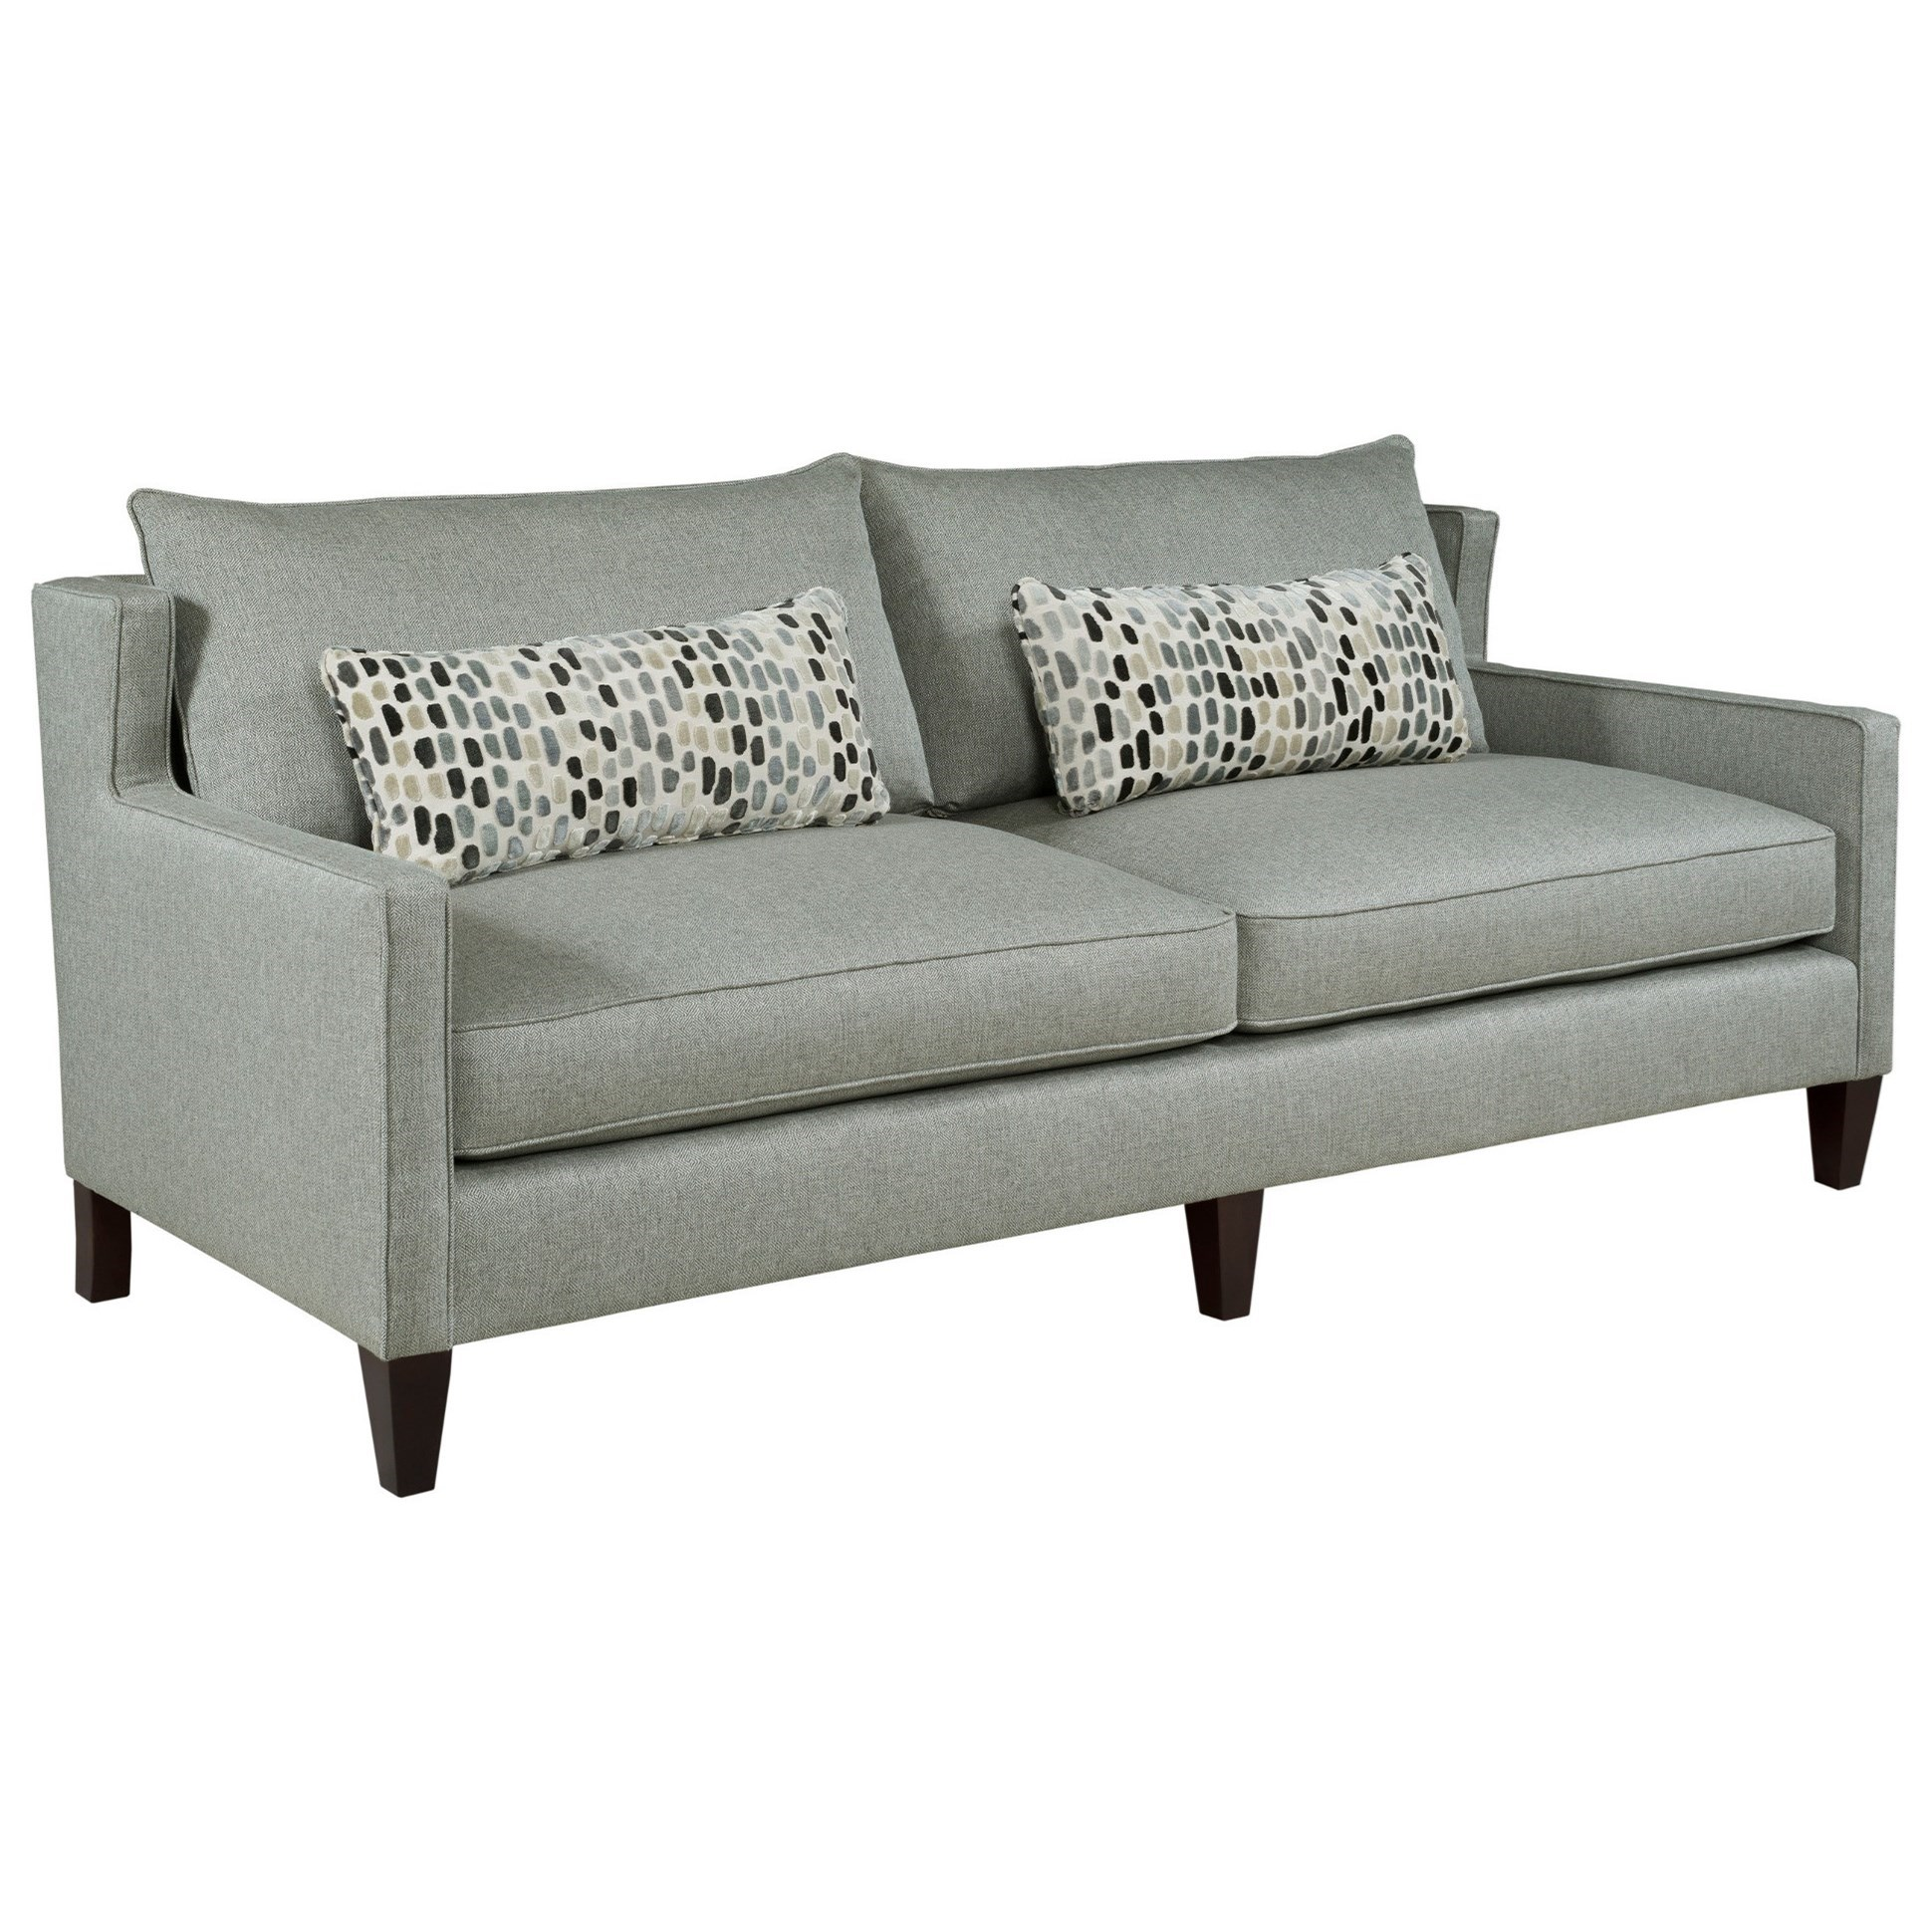 Alta Sofa by Kincaid Furniture at Story & Lee Furniture